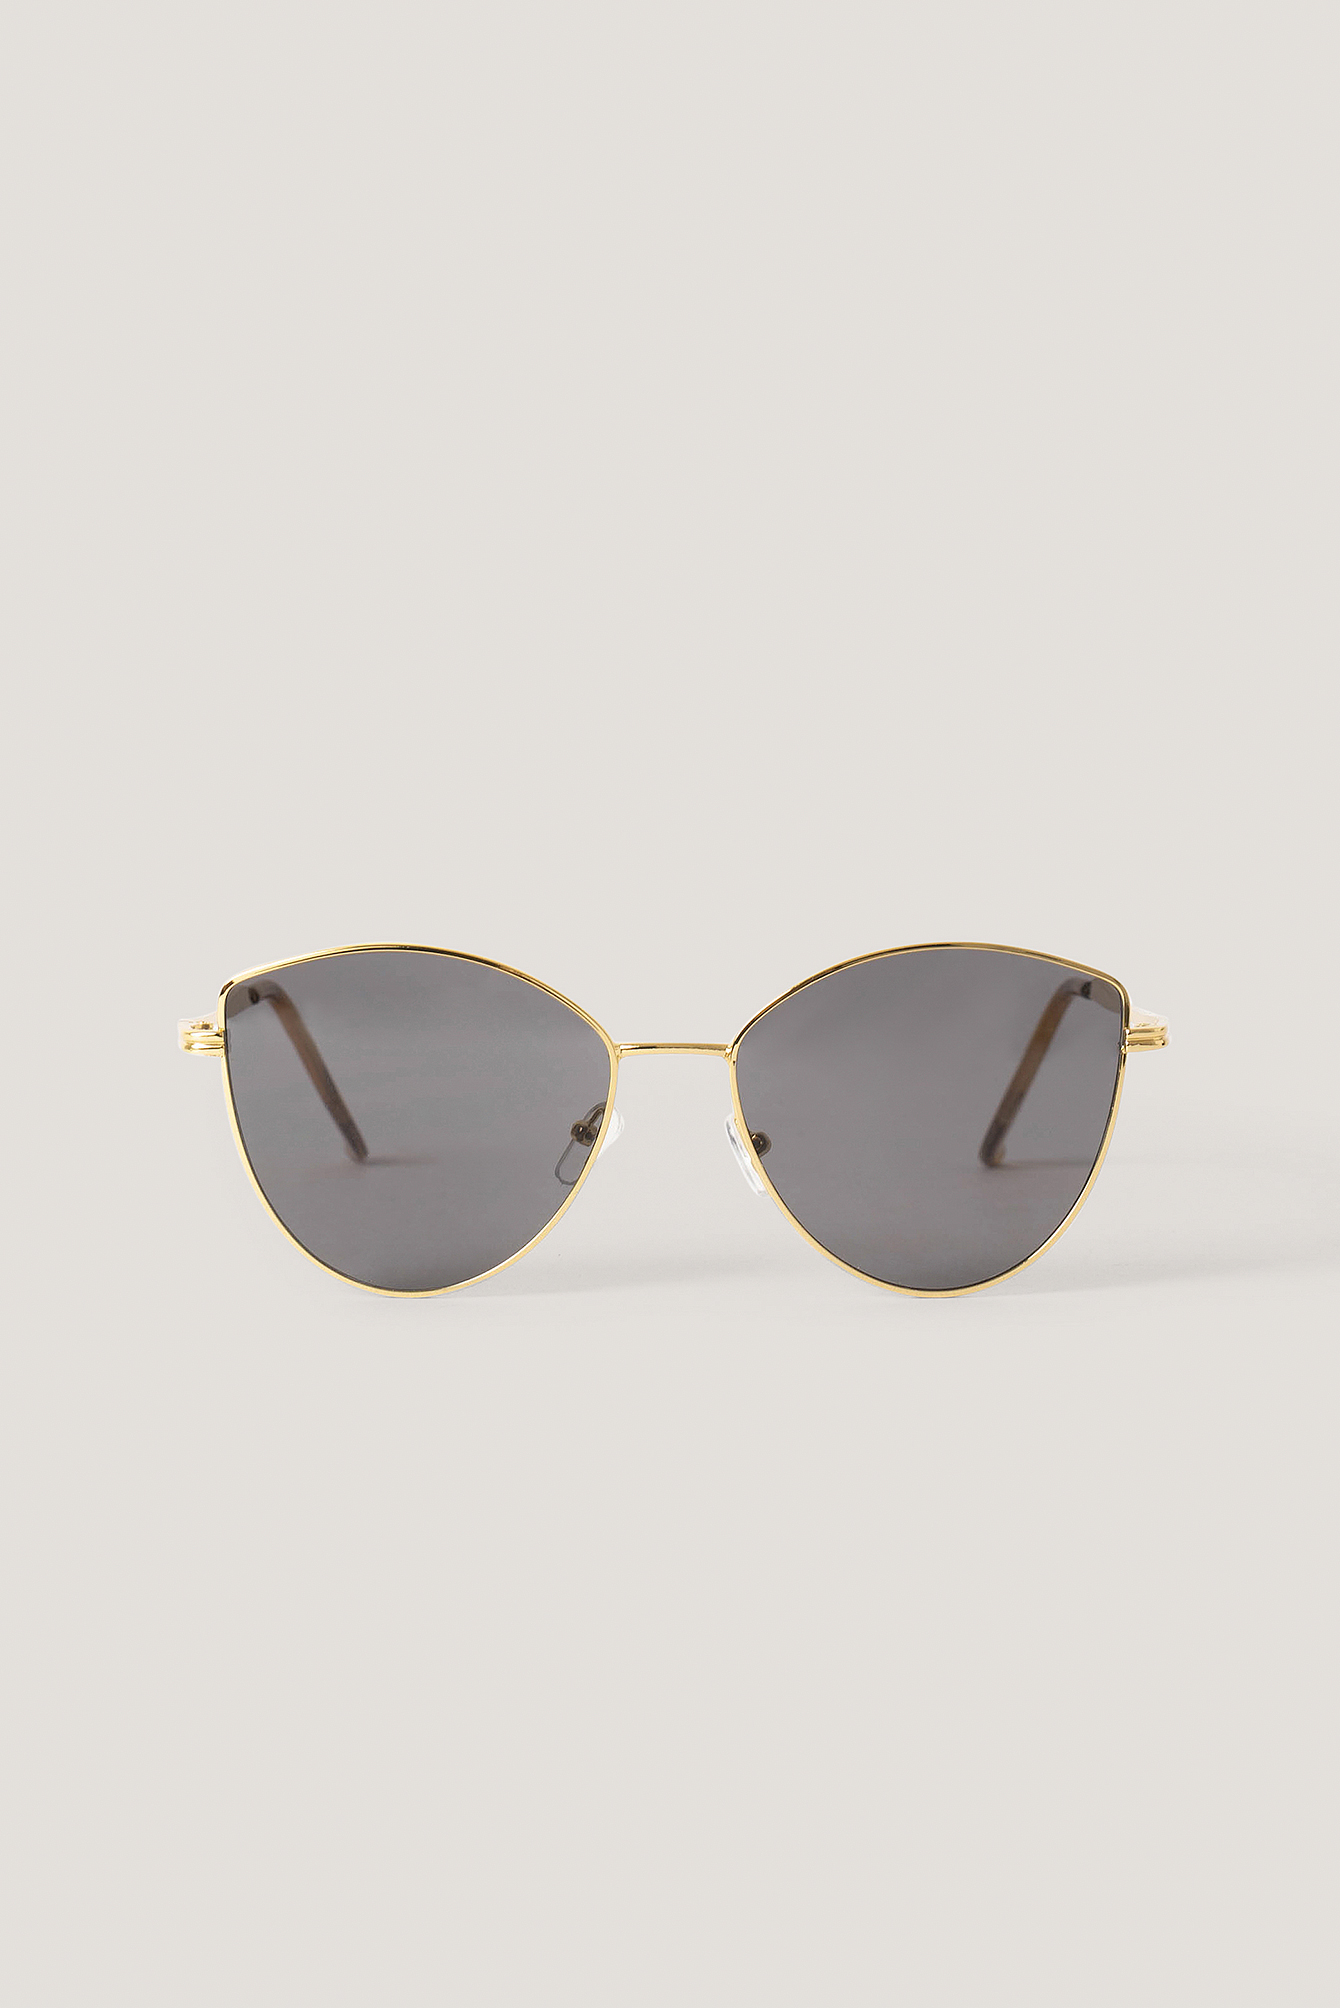 Gold Retro Cateye Sunglasses